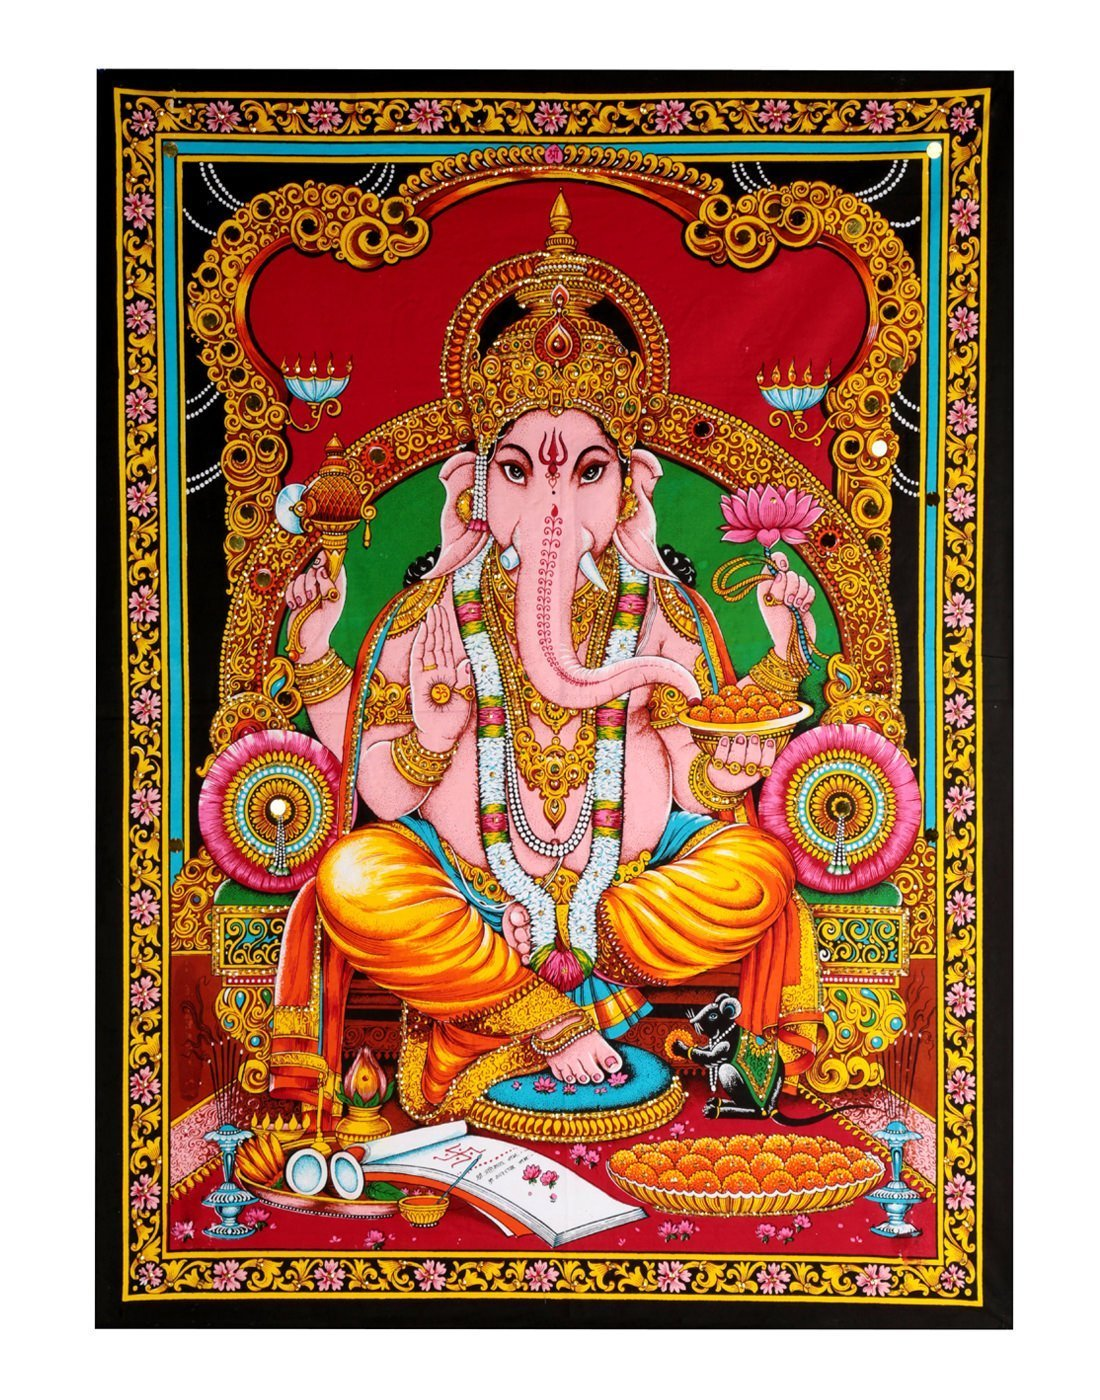 Lord Ganesha Tapestry Small Wall Tapestry Posters Wall Tapestries Hangings Tapestry Wall Hanging Home D/écor Wall Blanket Tapestry Indian Wall Art D/écorative Poster Hippie 40x30 Tapestry For Dorm Room